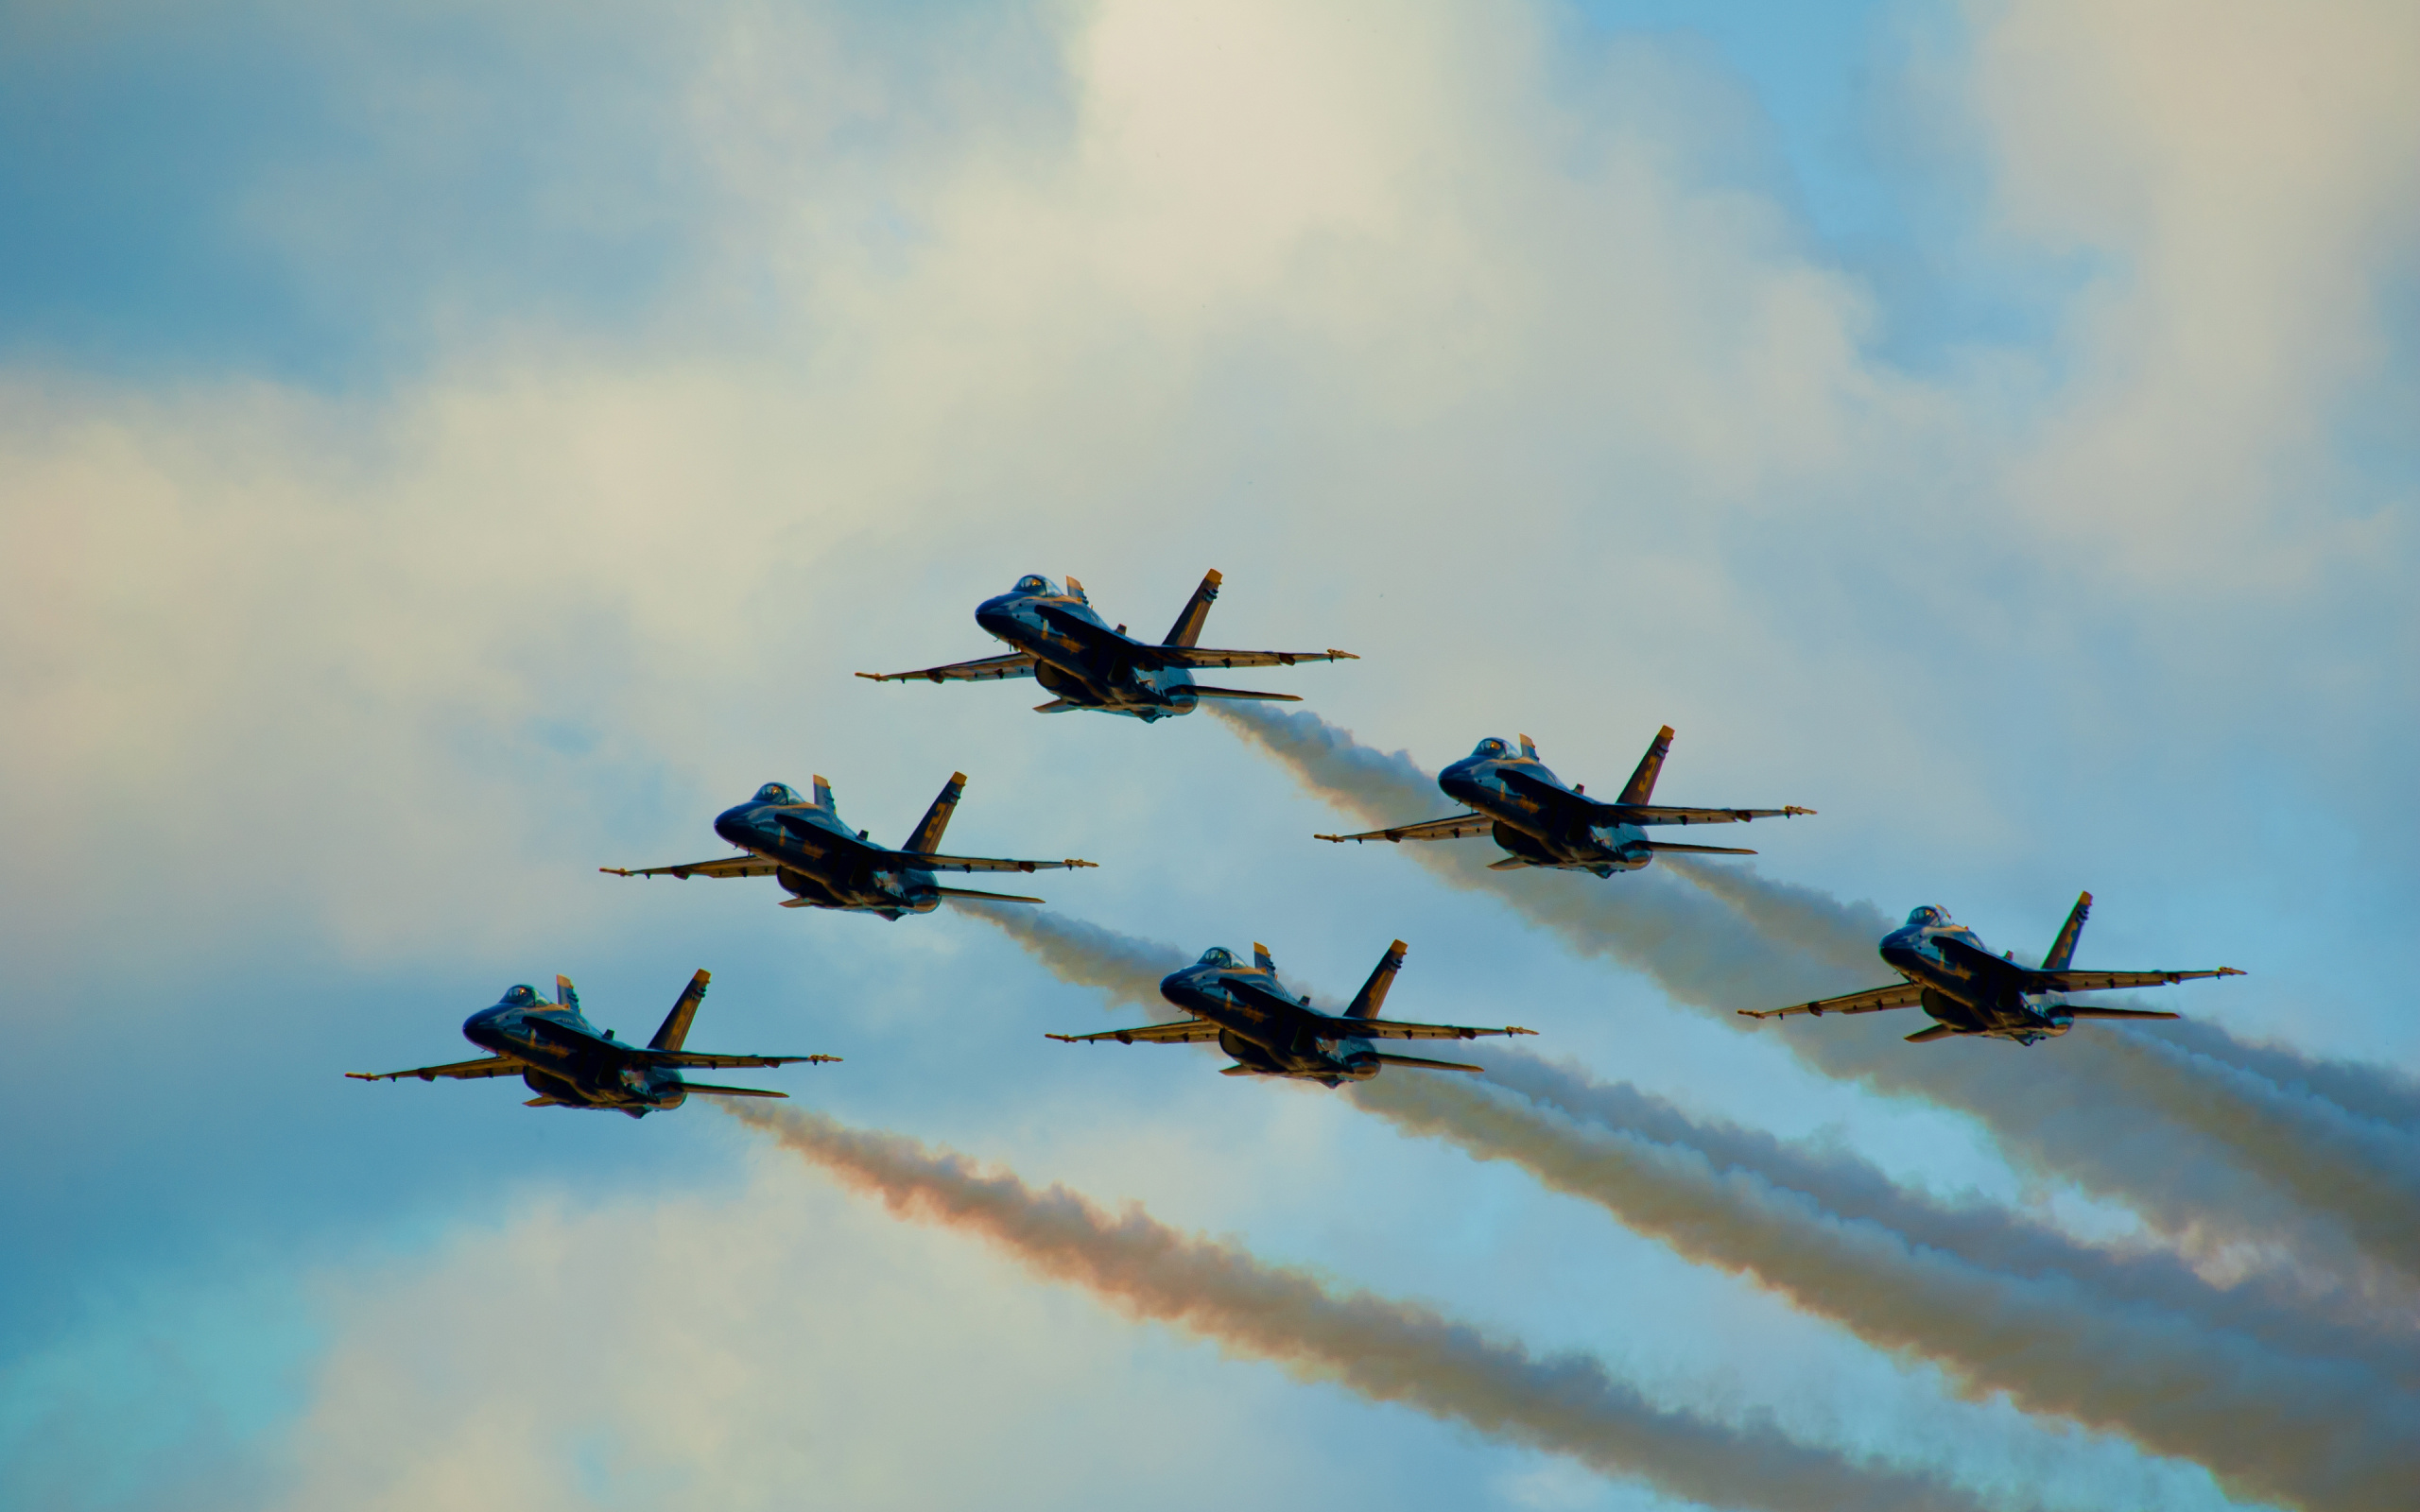 fantastic jet formation wallpaper 45680